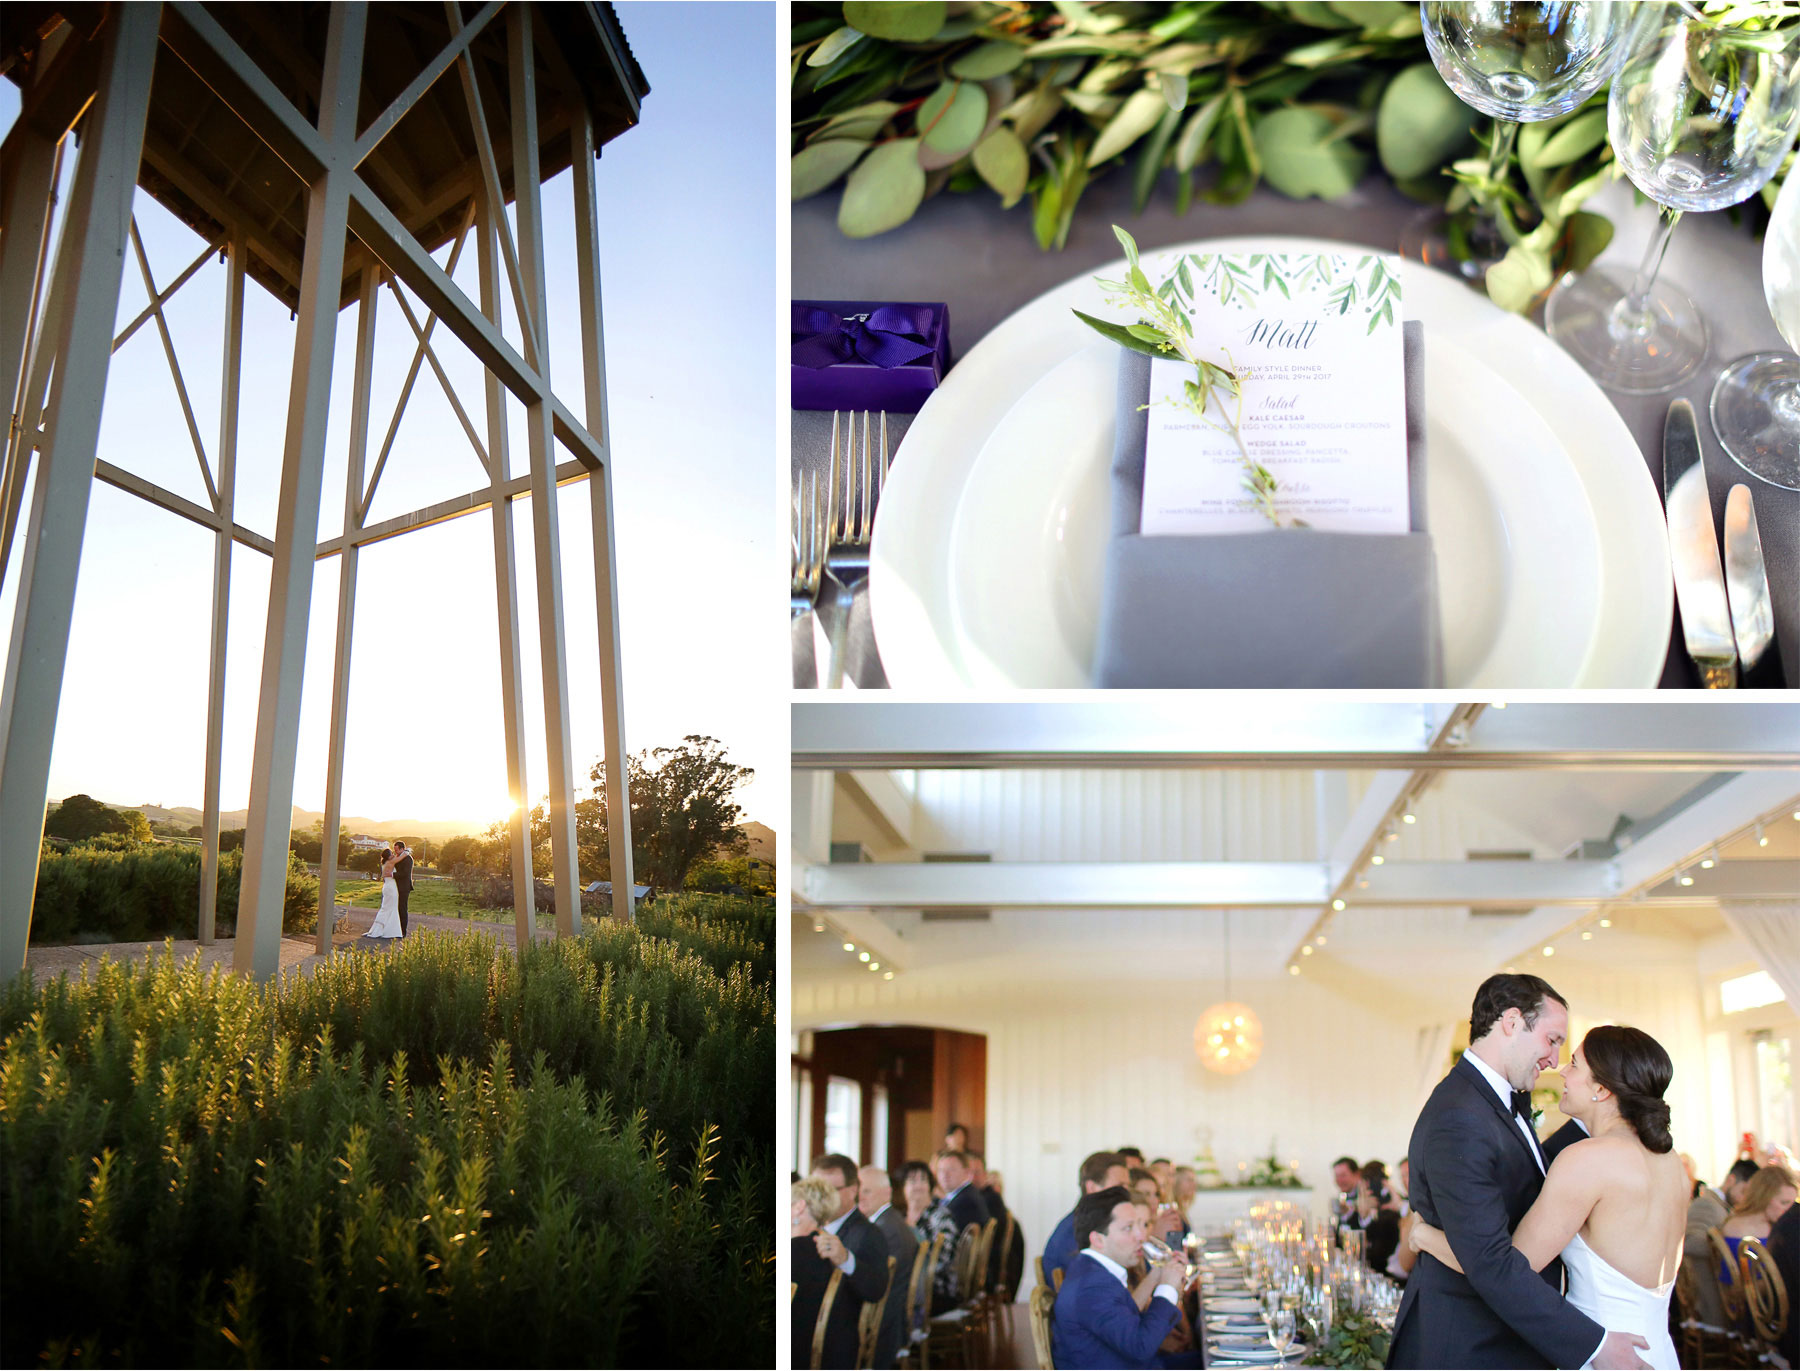 26-Napa-California-Wedding-Photographer-by-Andrew-Vick-Photography-Spring-Destination-Carneros-Resort-and-Spa-Reception-Bride-Groom-Vineyard-Winery-Table-Setting-Menu-Details-Decor-Embrace-Alex-and-Roger.jpg